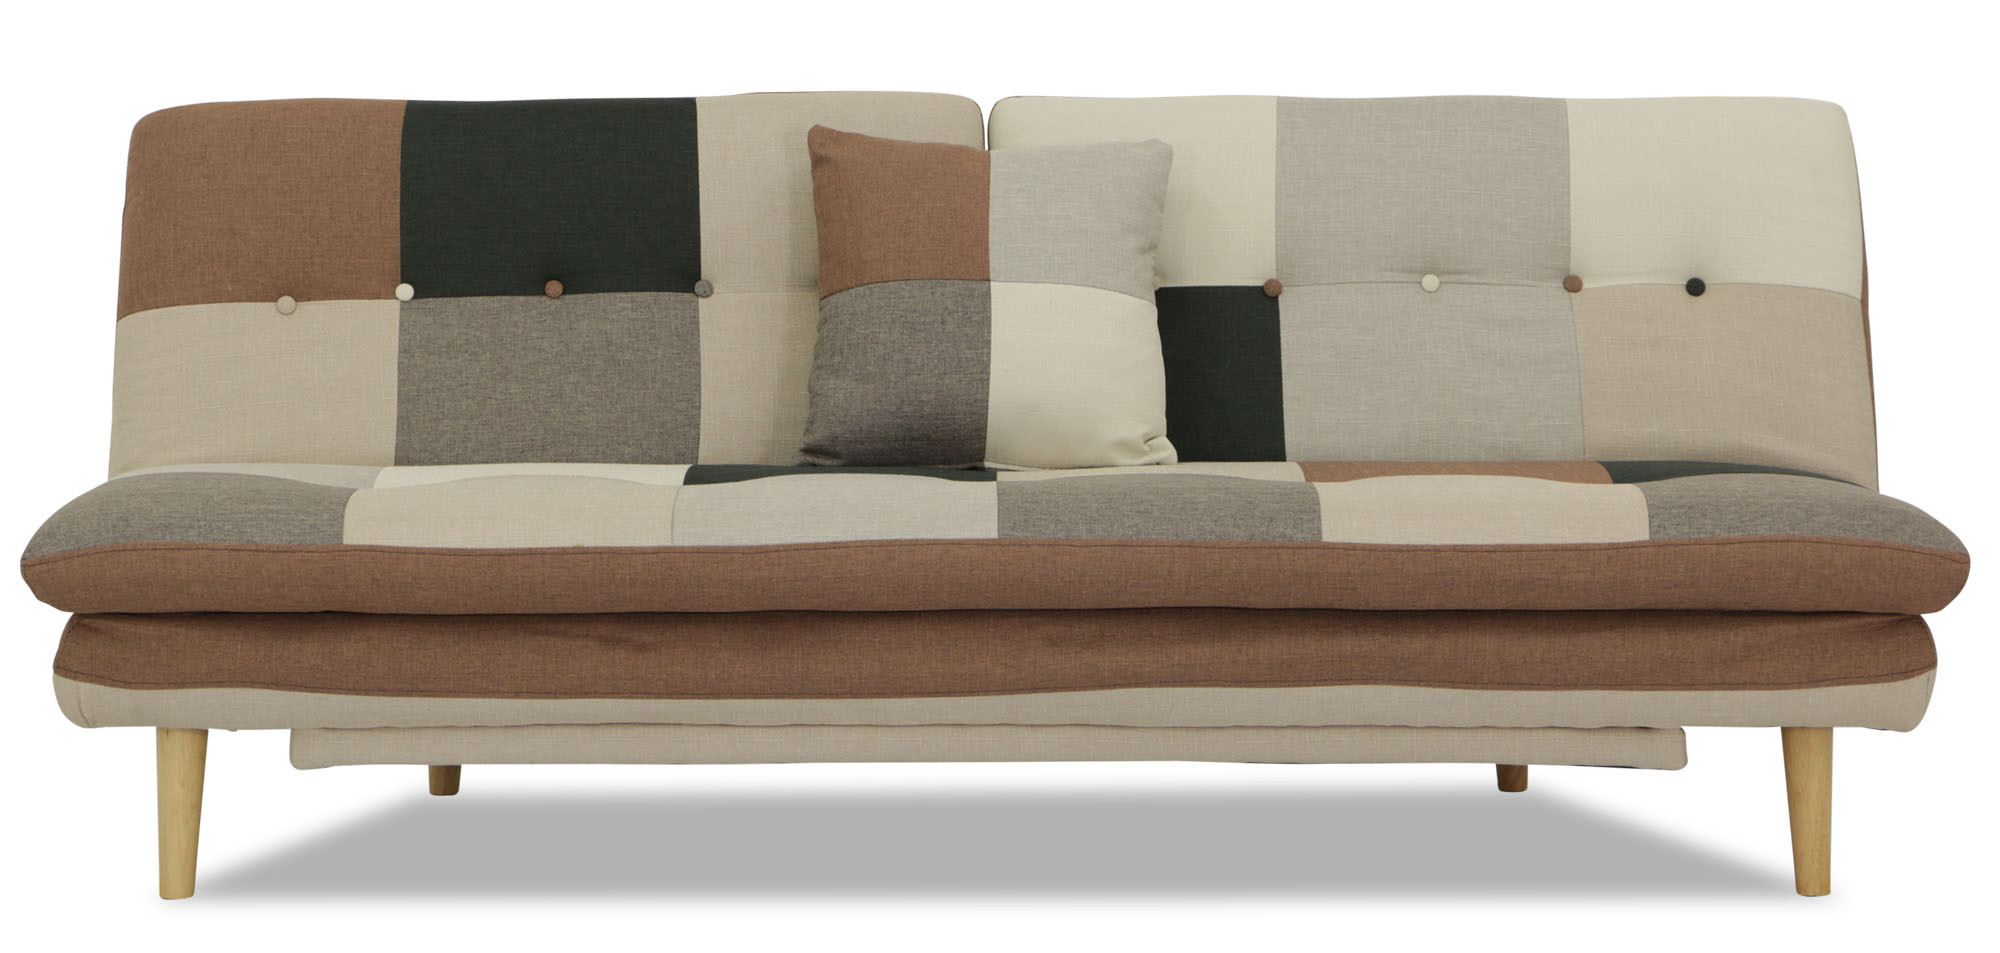 Patchwork Sofa Jeza Patchwork Sofa Bed Grey Mix Furniture And Home Décor